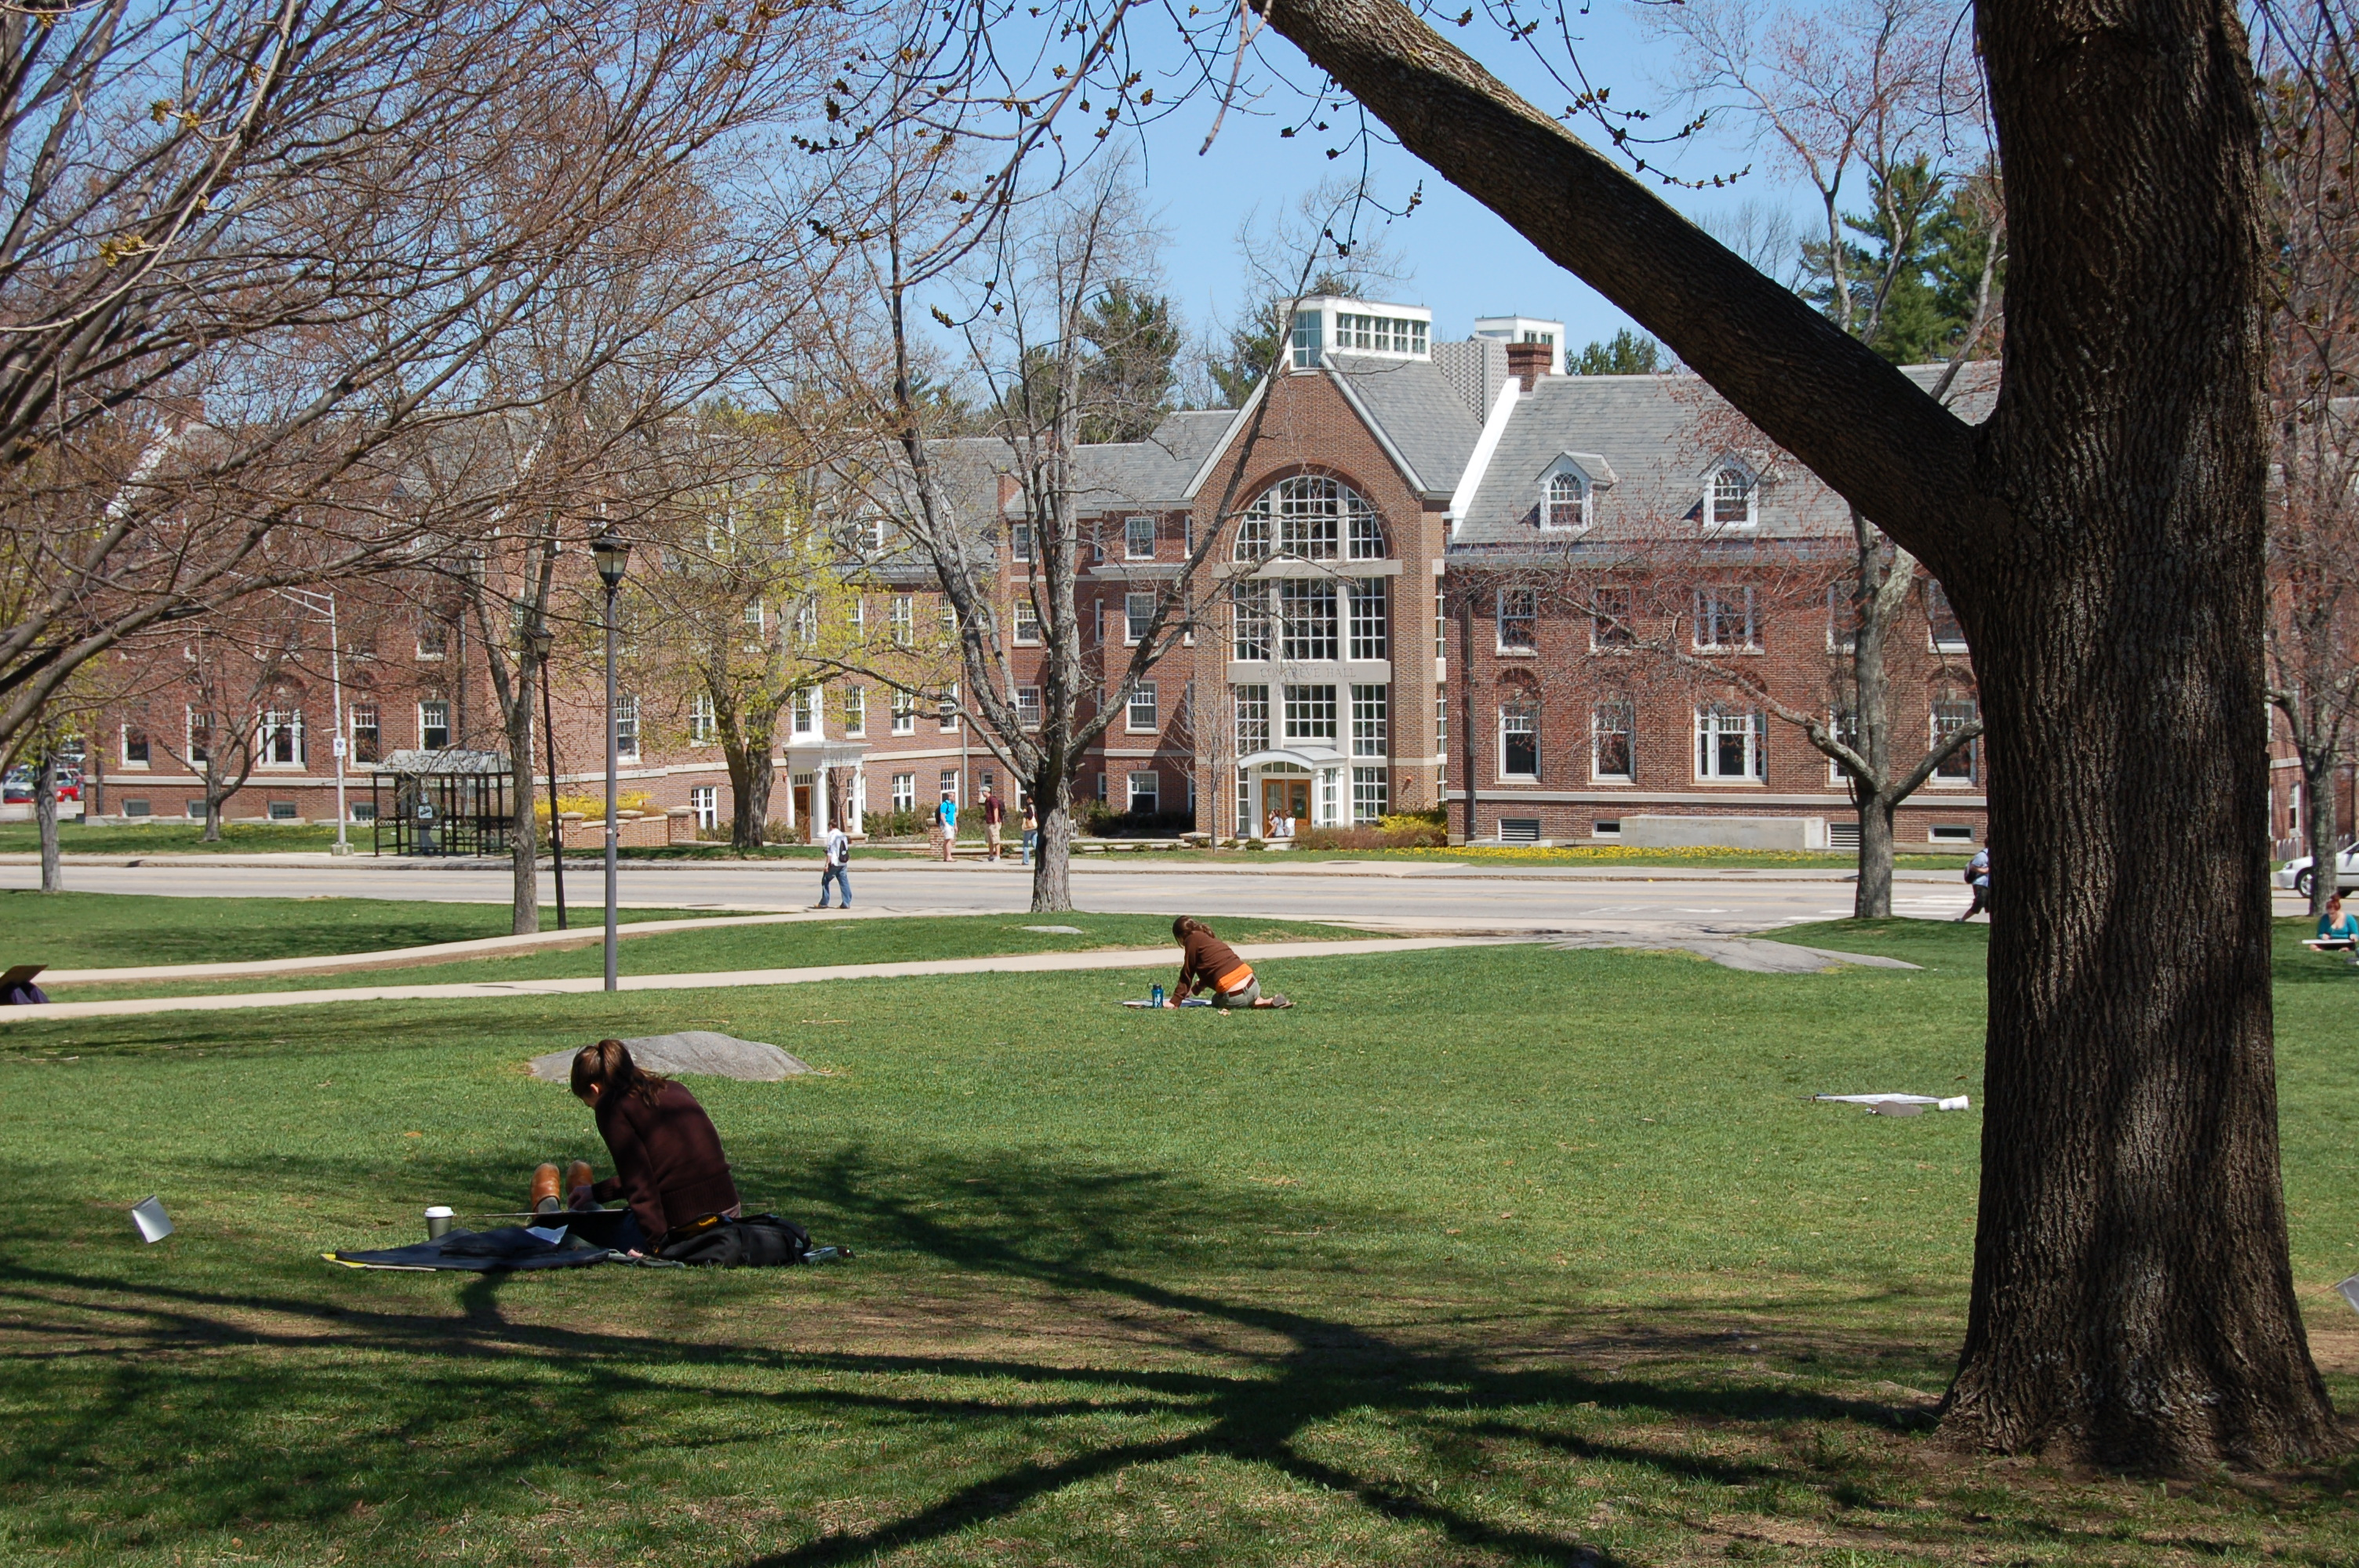 Racism at the University of New Hampshire